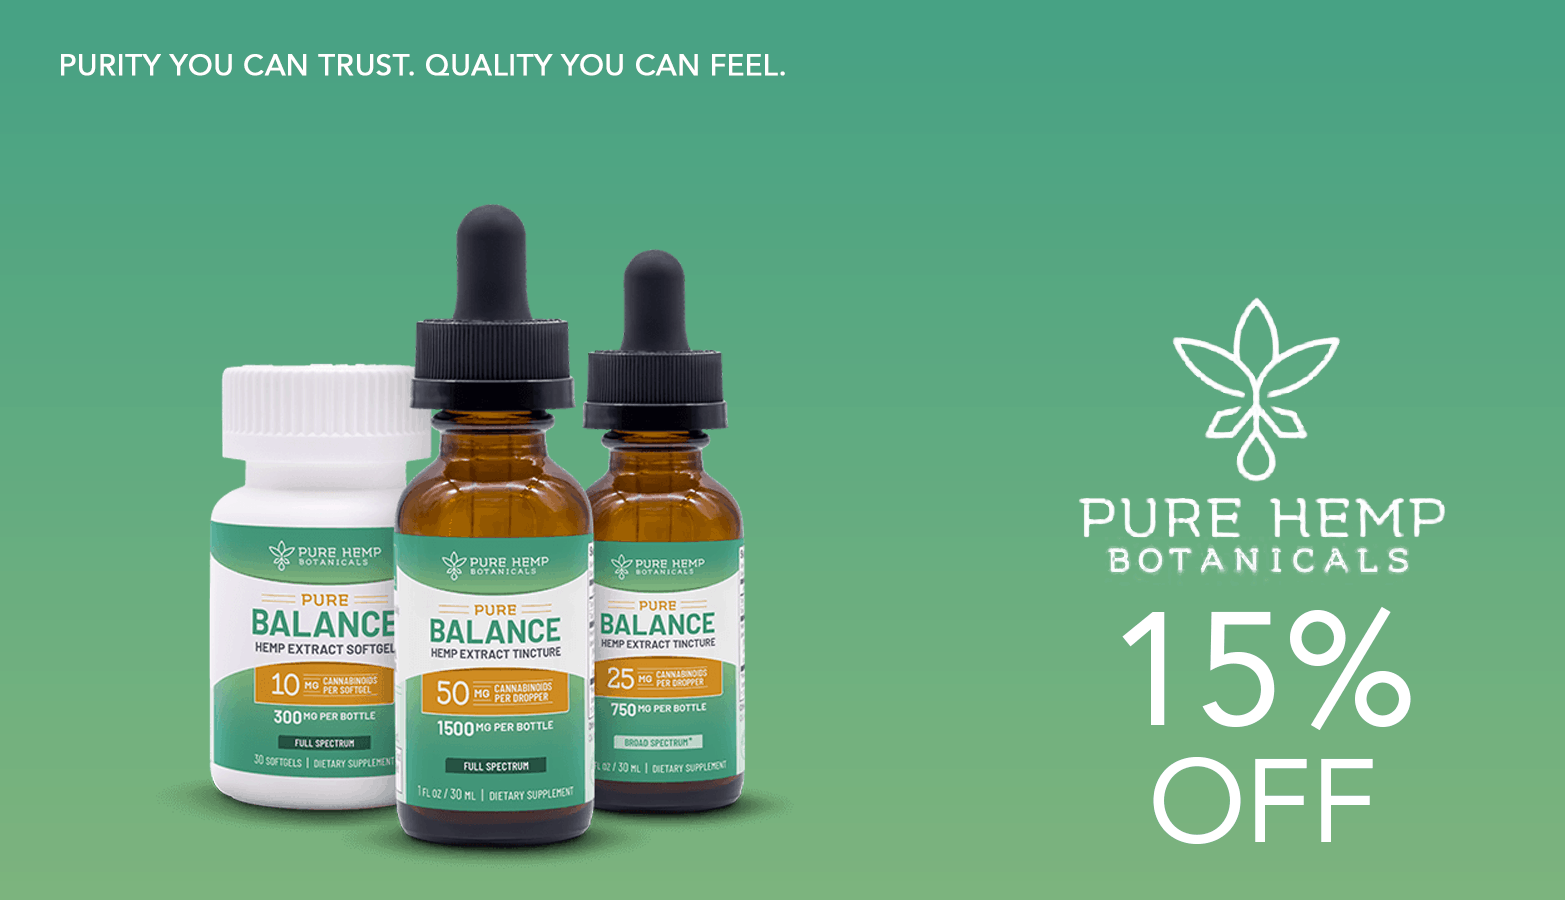 Pure Hemp Botanicals CBD Coupon Code 15 Percent Offer Website